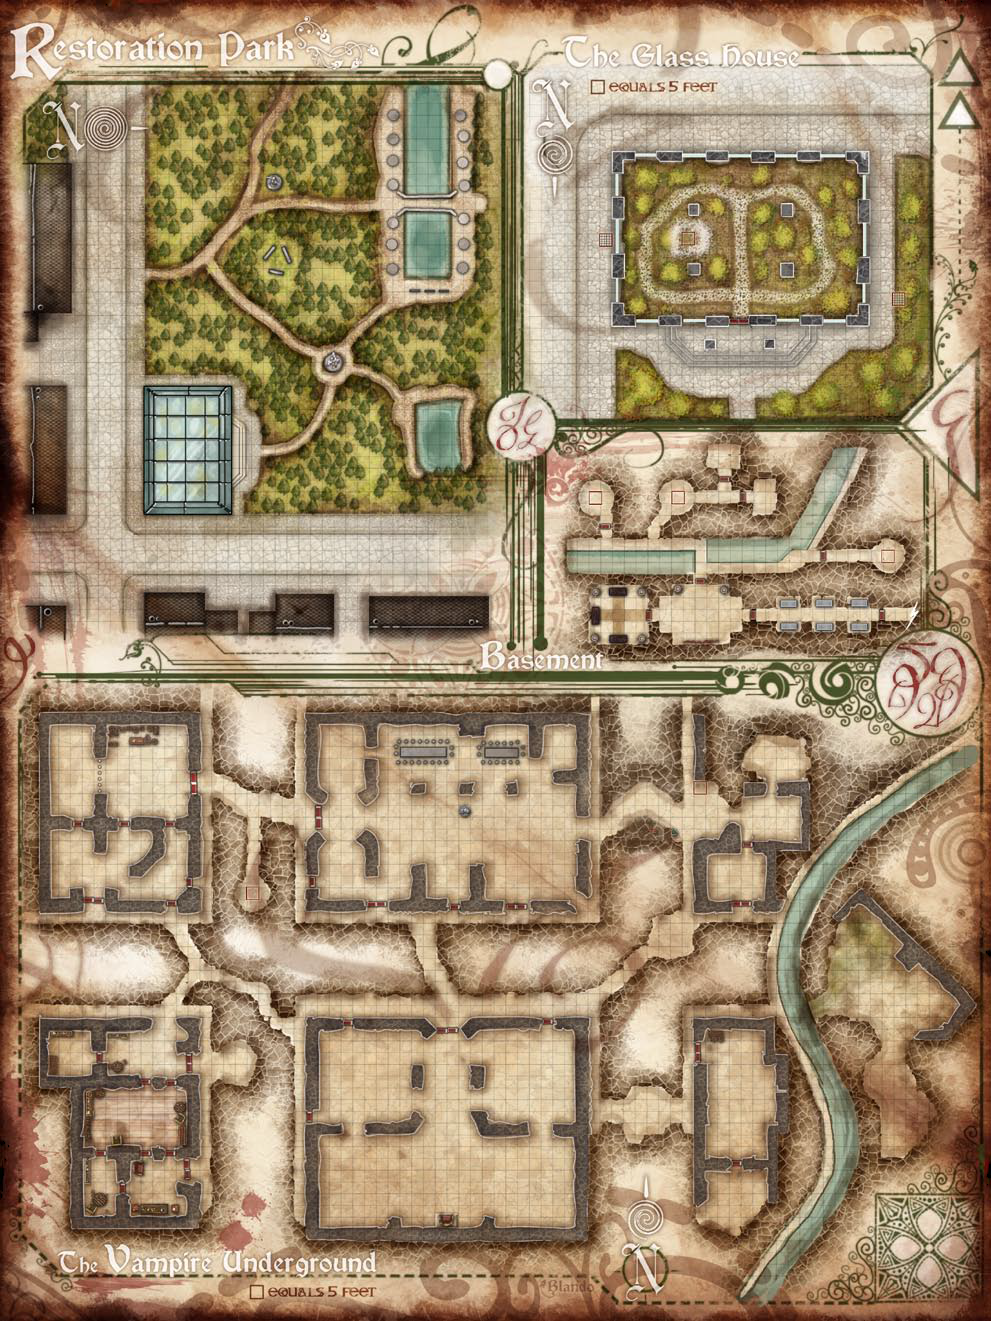 Carrioncrown-restorationpark.png